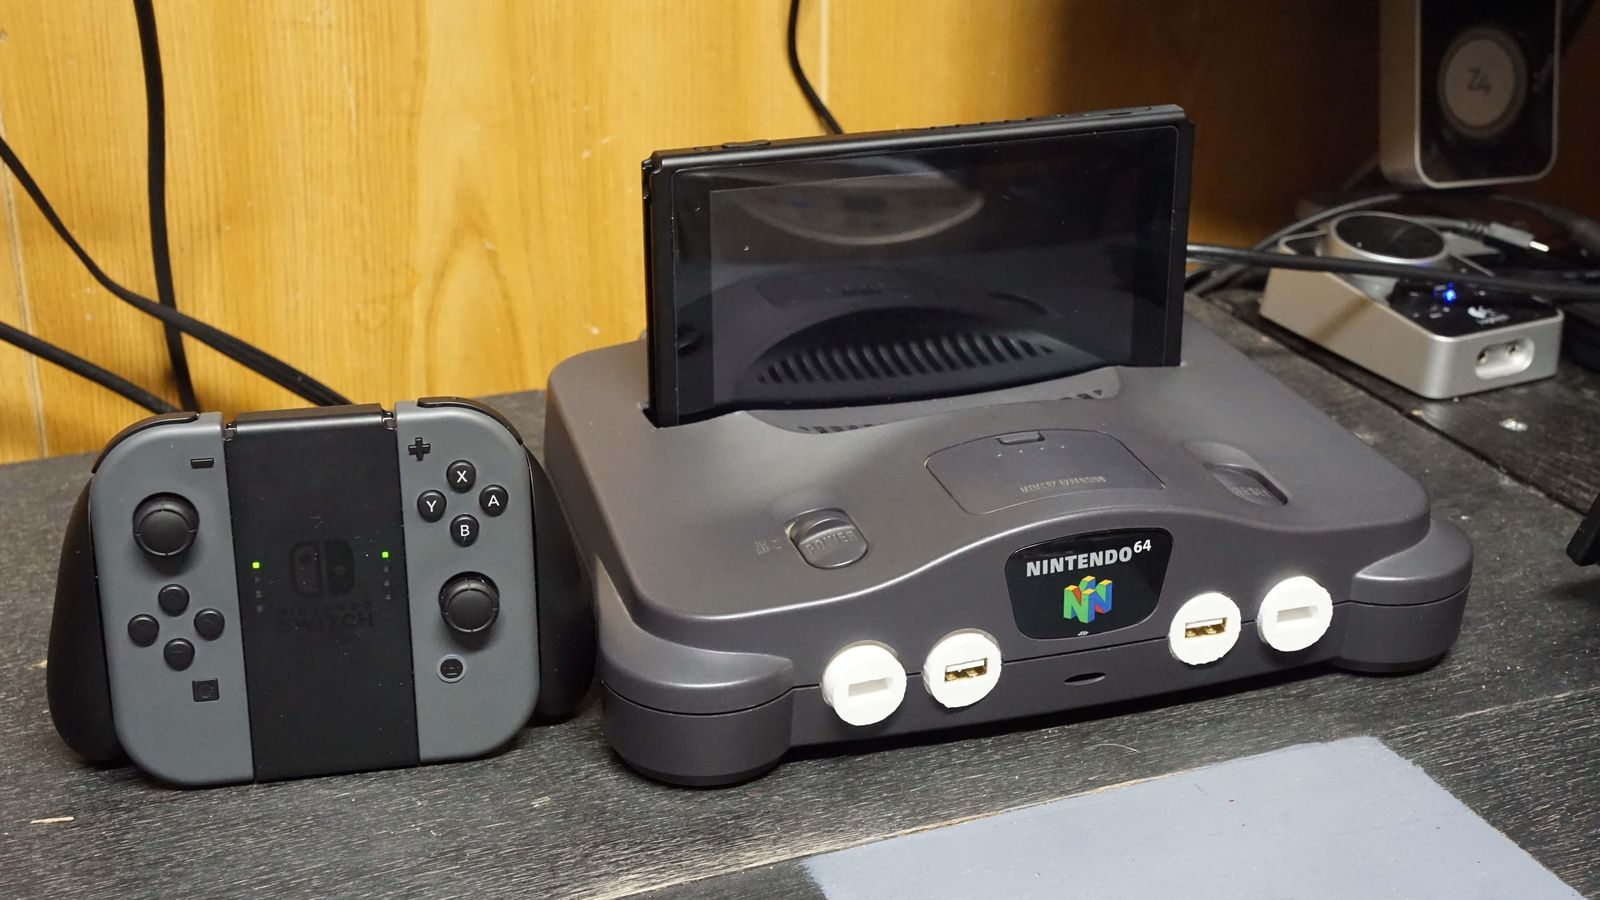 This Nintendo Switch dock mod is the ultimate nostalgia piece